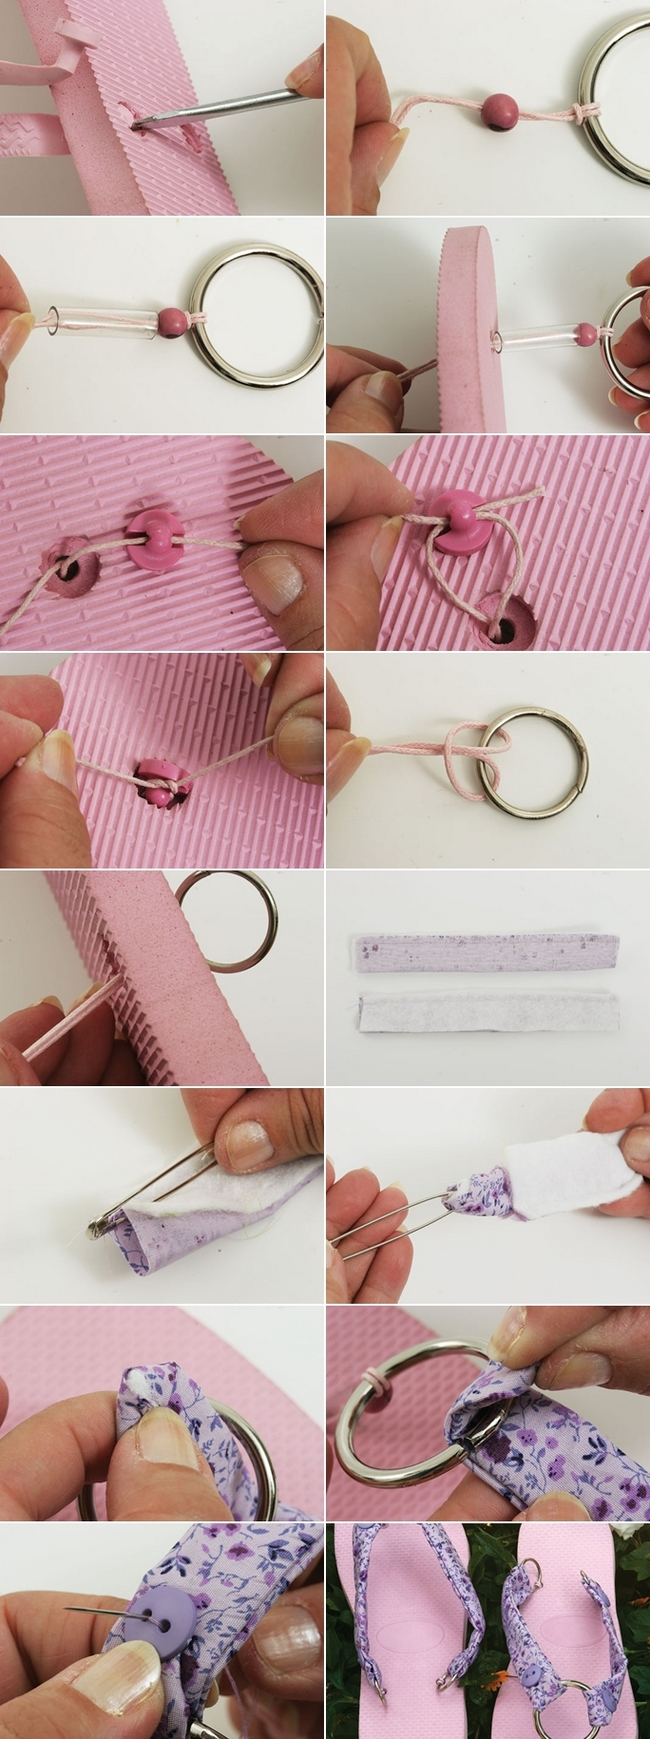 diy flip flops project pink sandals purple fabric metall ring